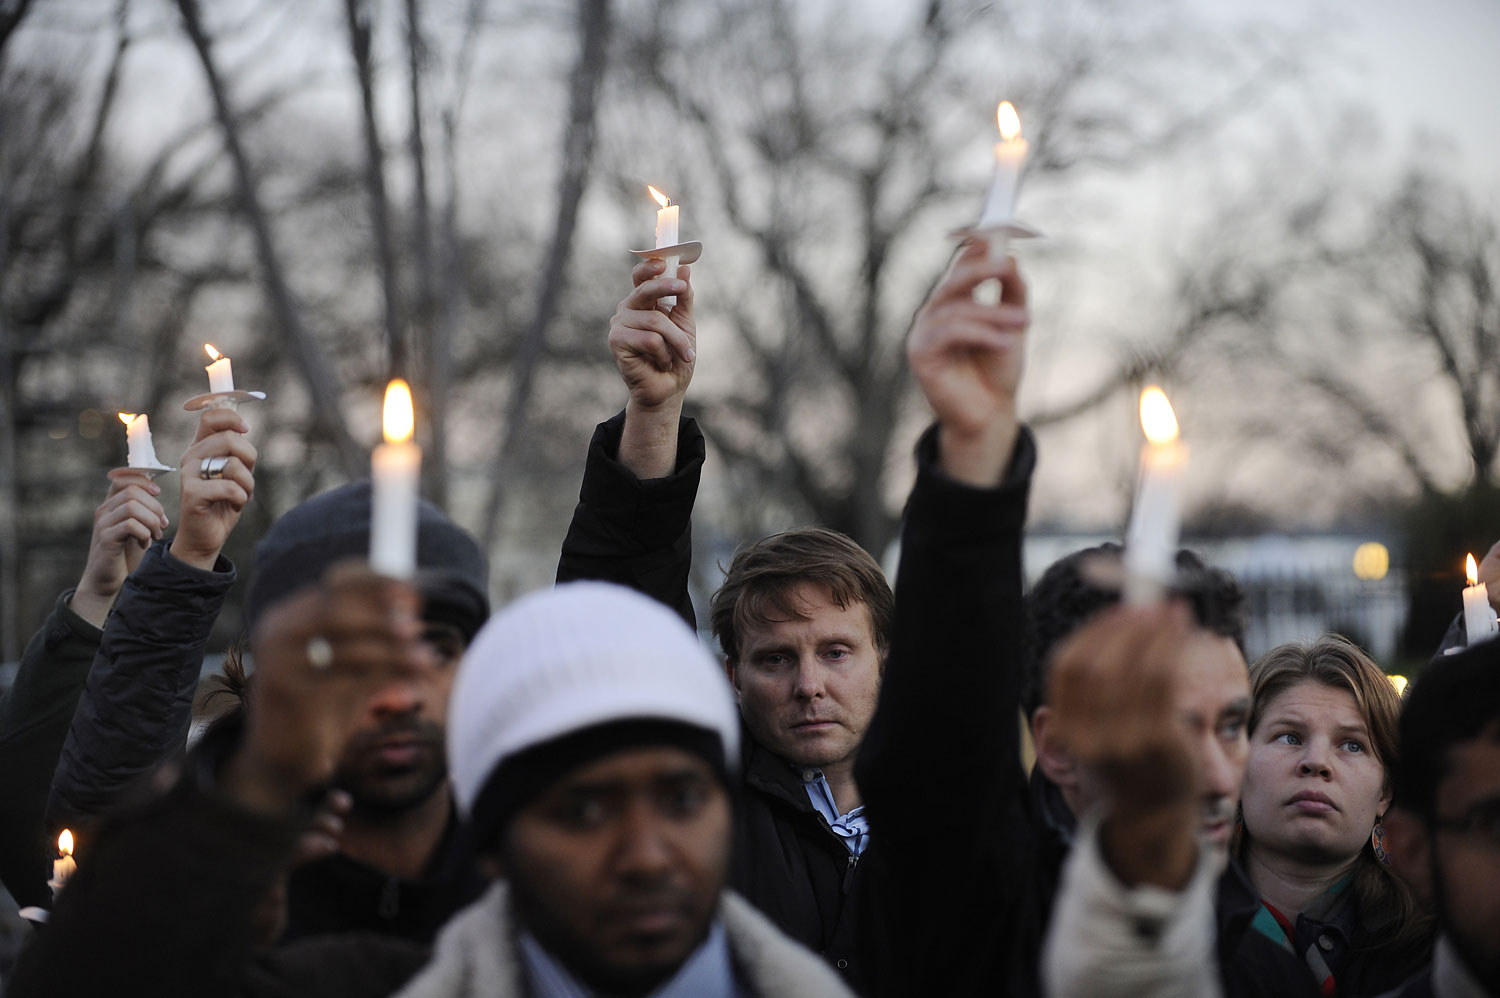 image: Supporters of gun control legislation hold candles and placards during a rally in front of the White House